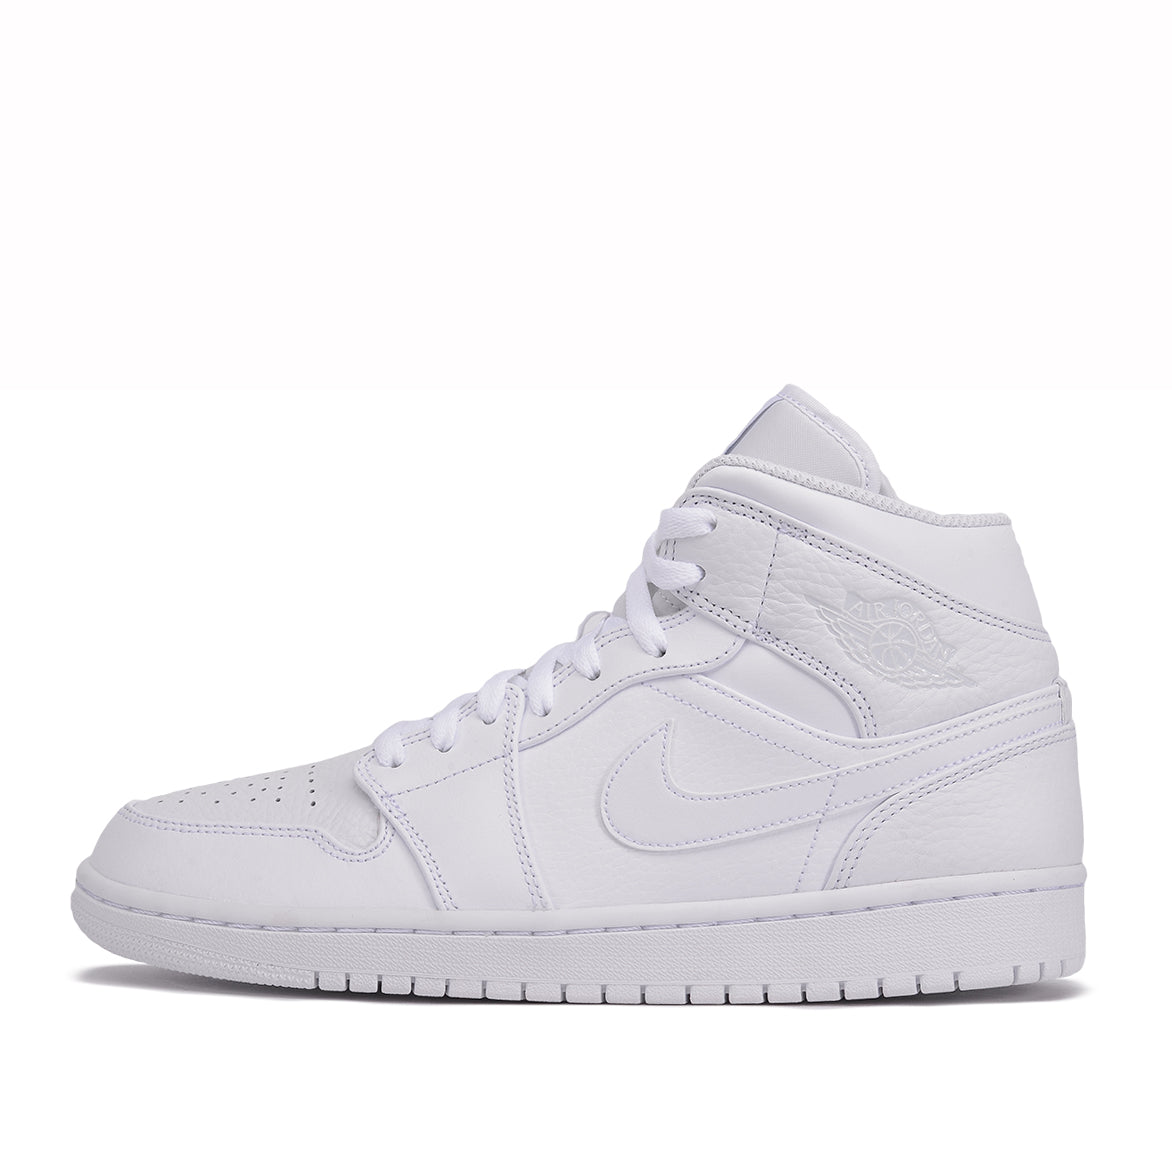 AIR JORDAN 1 MID - WHITE / PURE PLATINUM